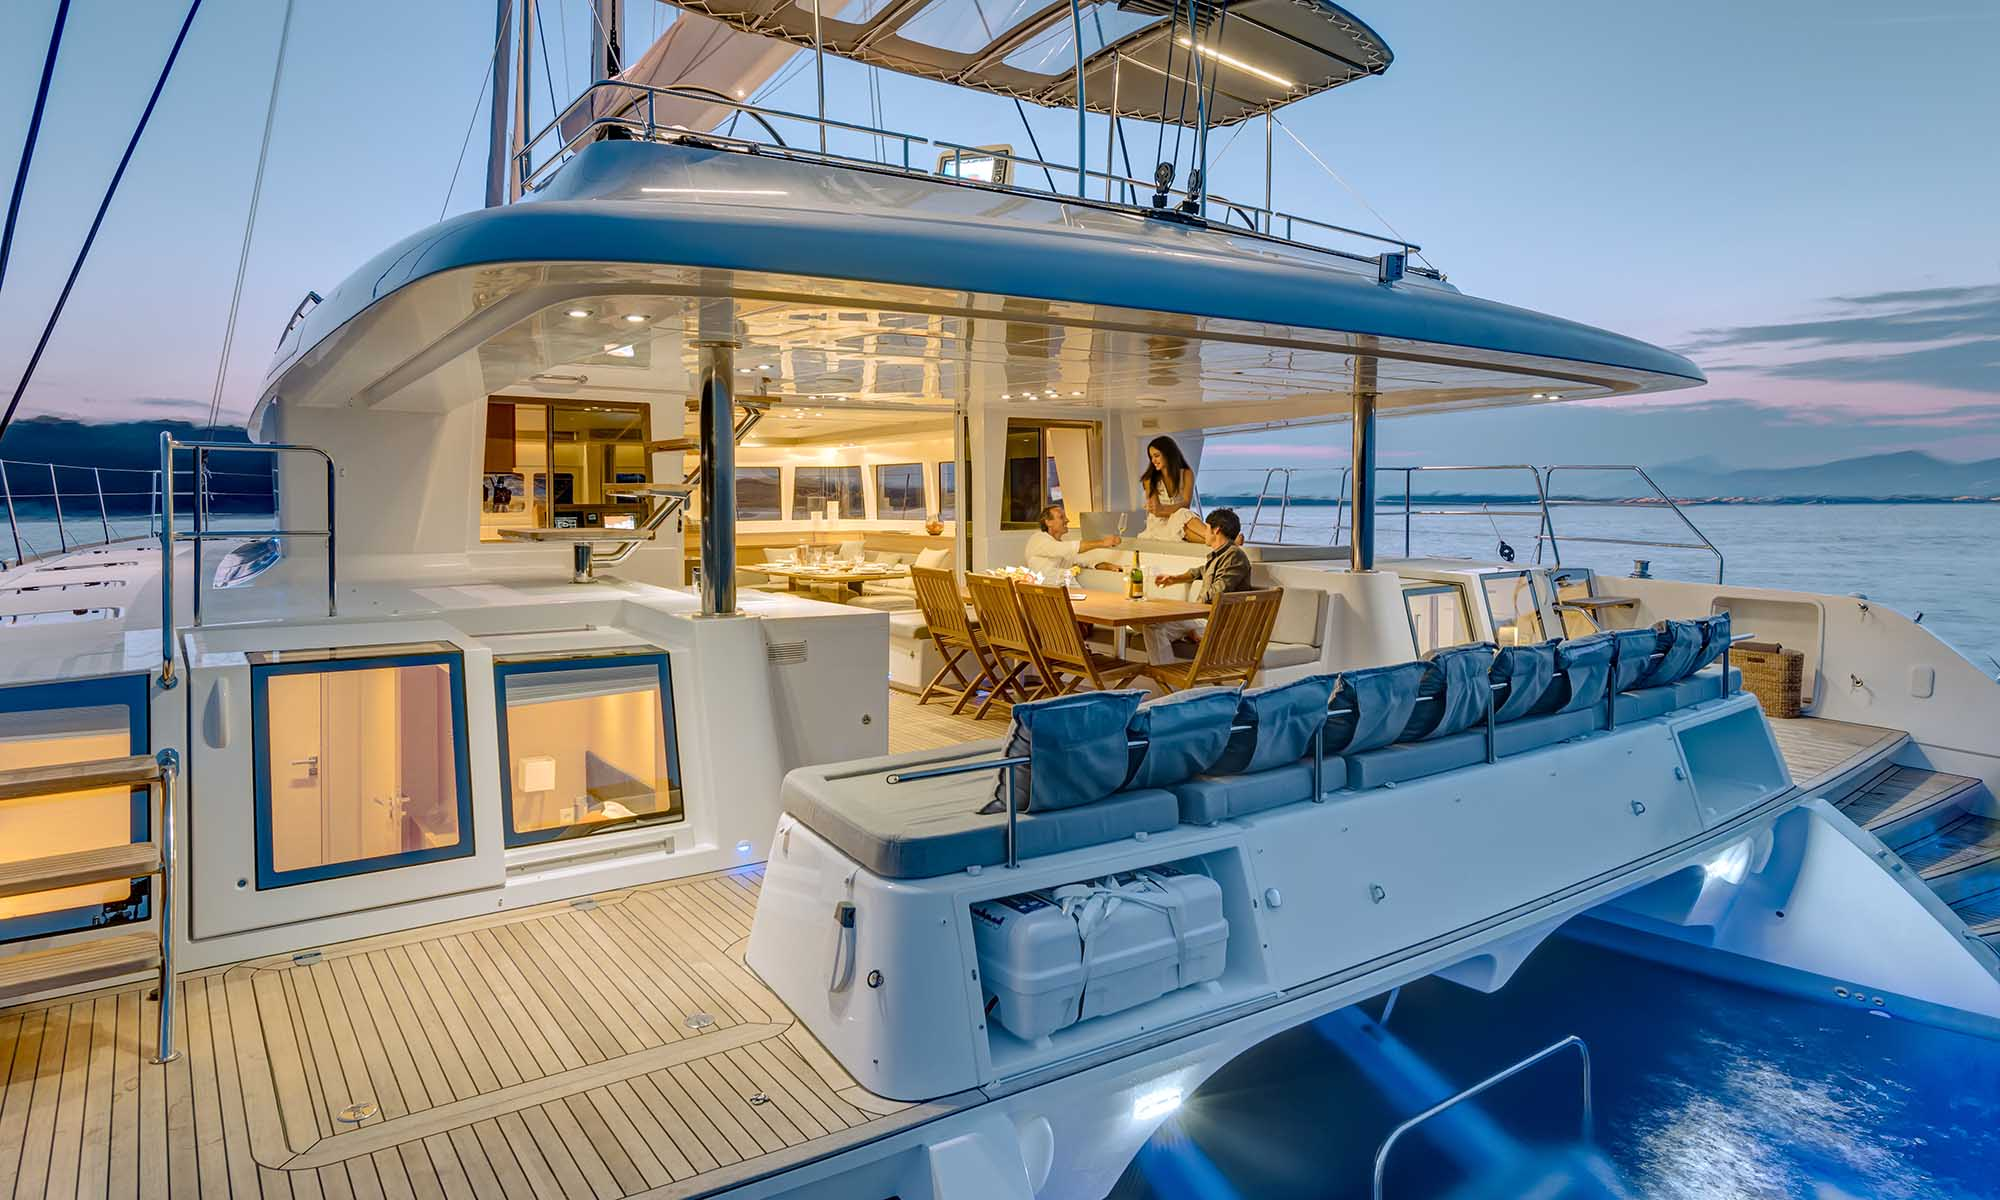 Dream Yacht Charter, Lagoon 620 Outdoor Dining Area